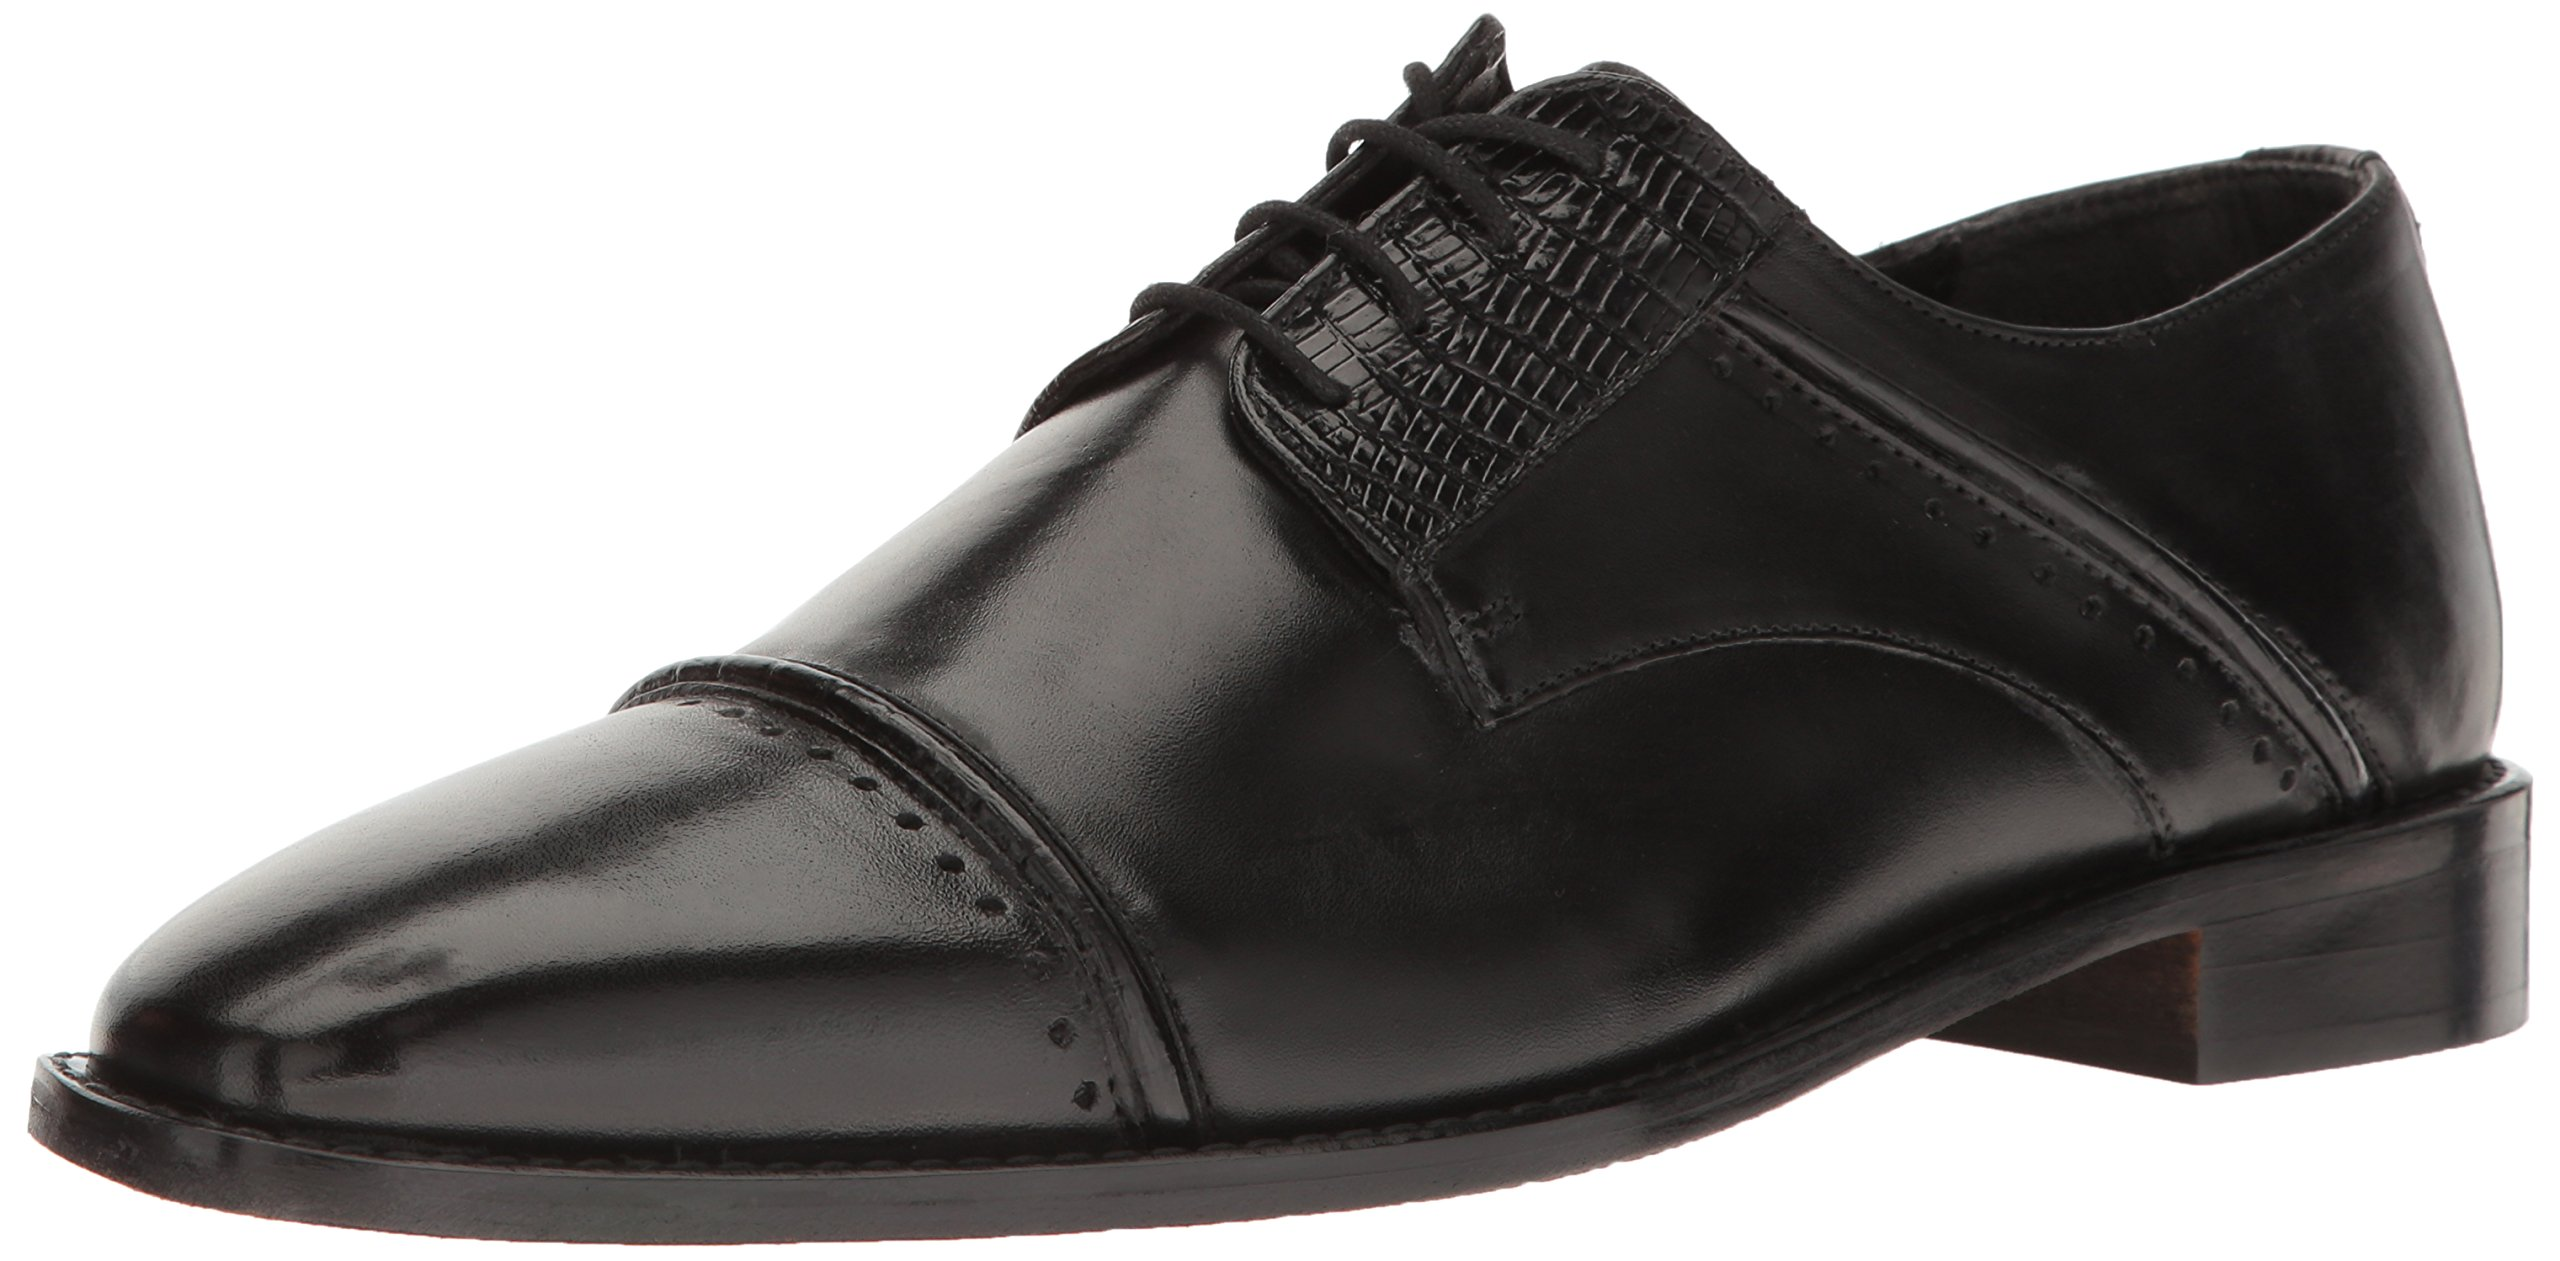 Stacy Adams Men's Ryland Oxford, Black, 10.5 M US